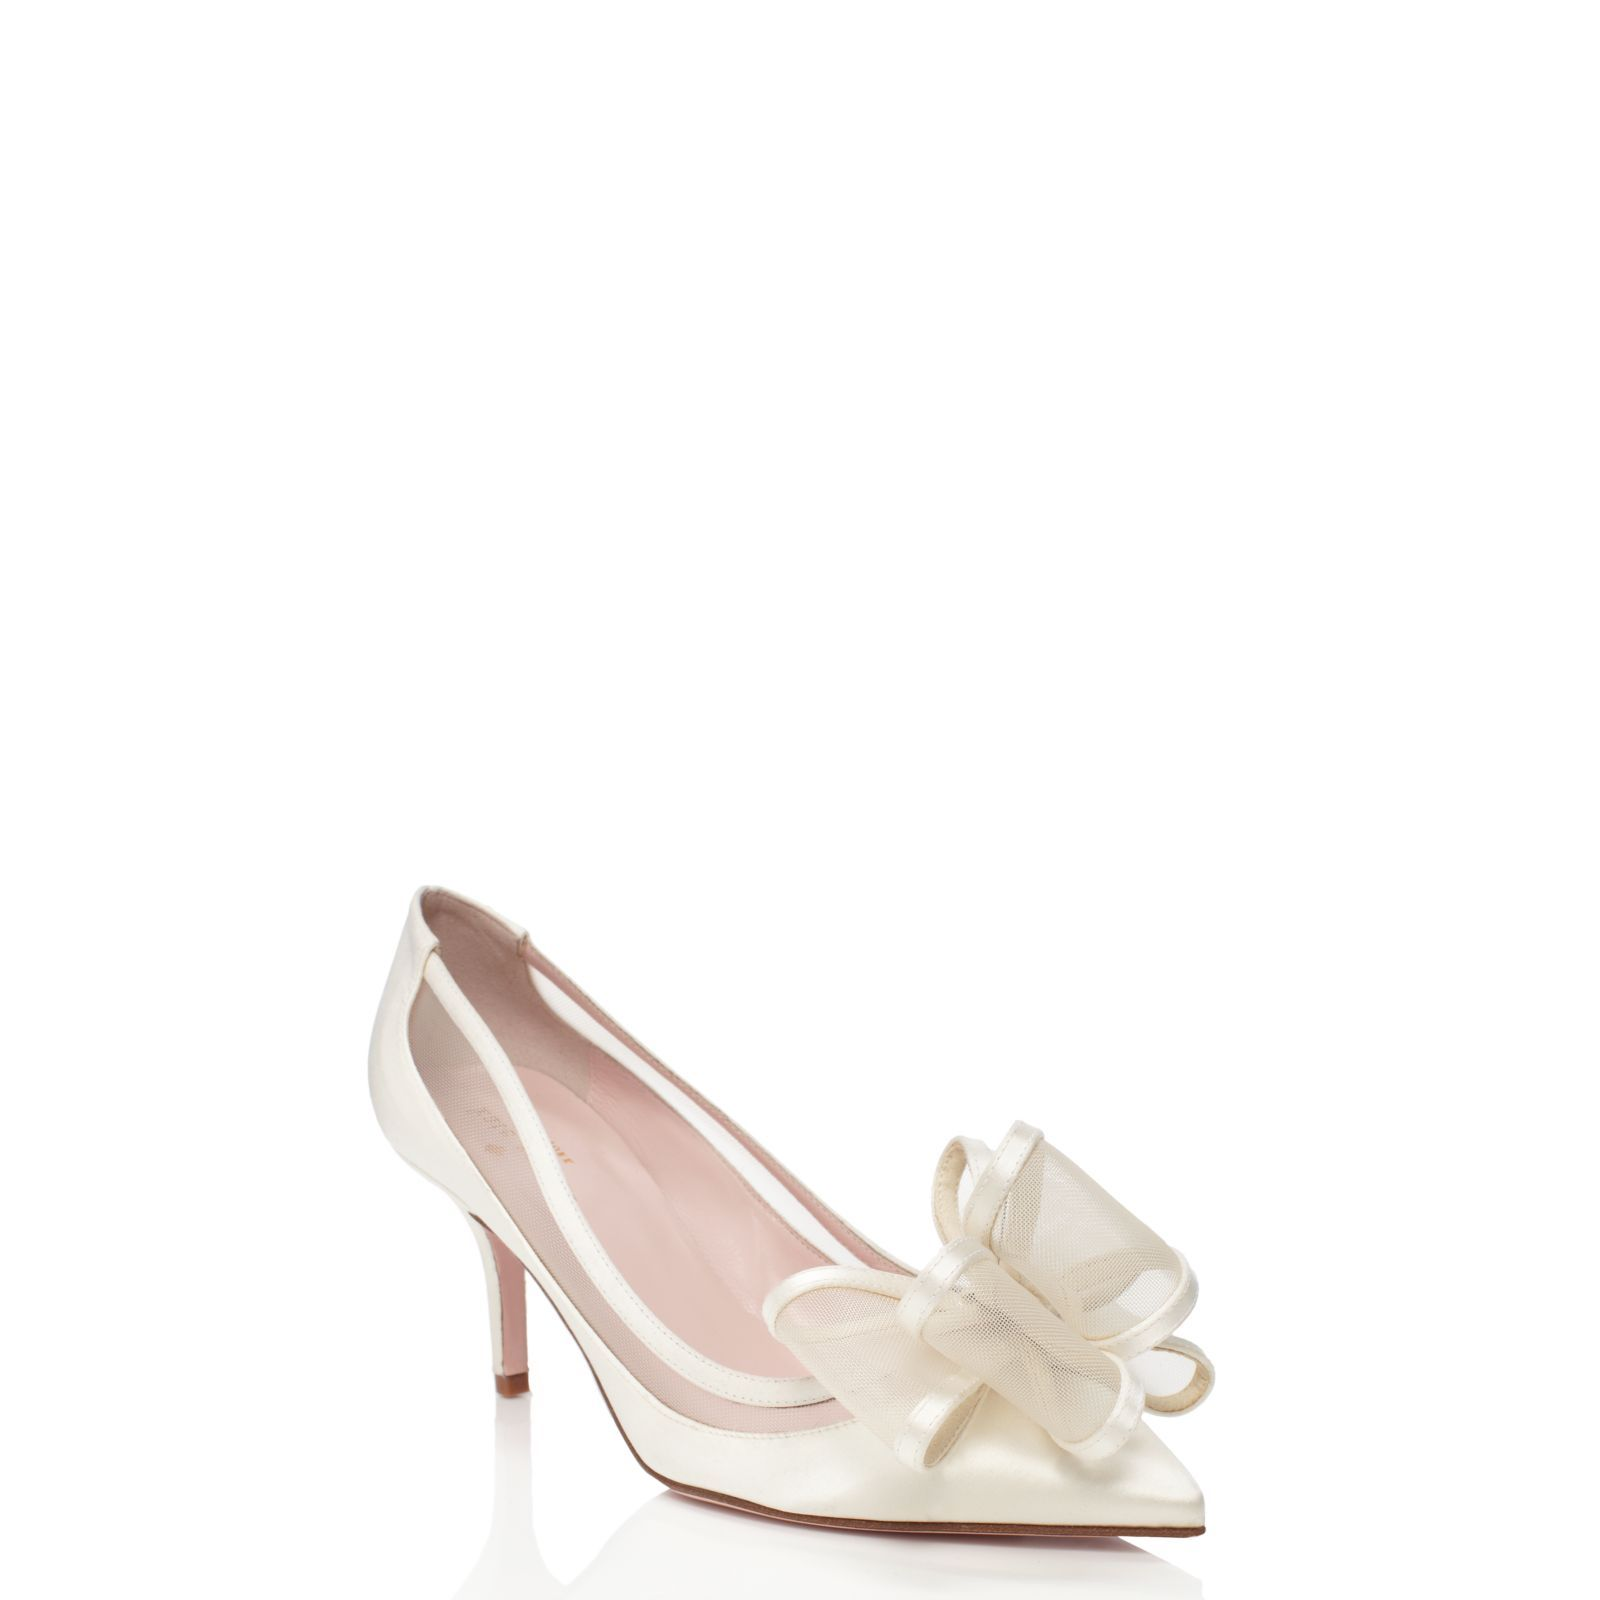 "Kate Spade Jackie Heels, $350; &lt;a href=""http://m.katespade.com/categories/ks-bridal-shoes/products#lct-1497""&gt;katespade.com&lt;/a&gt;   <!--EndFragment-->"